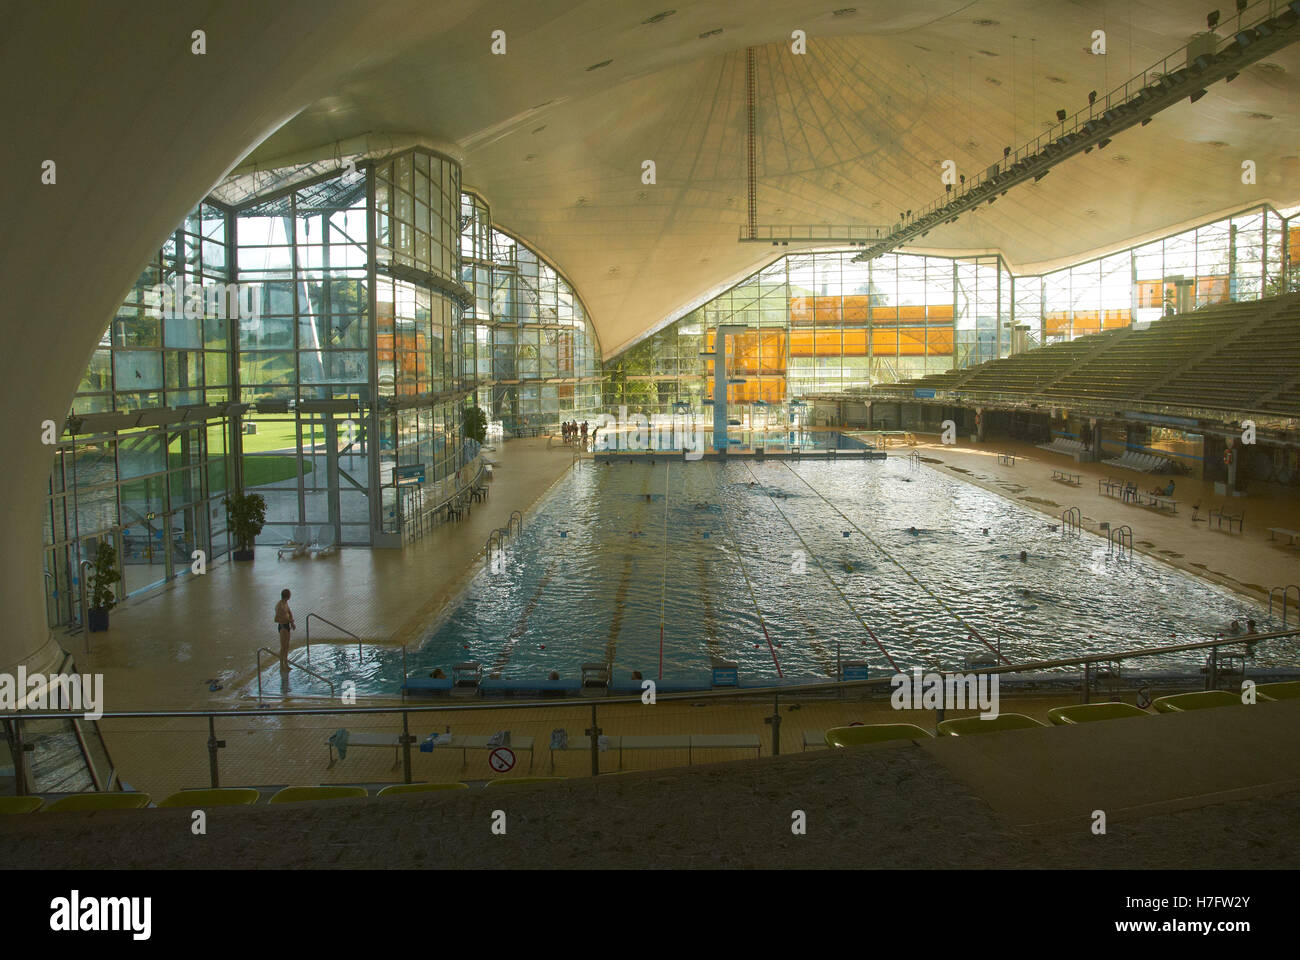 Olympic Size Swimming Pool Stock Photos Amp Olympic Size